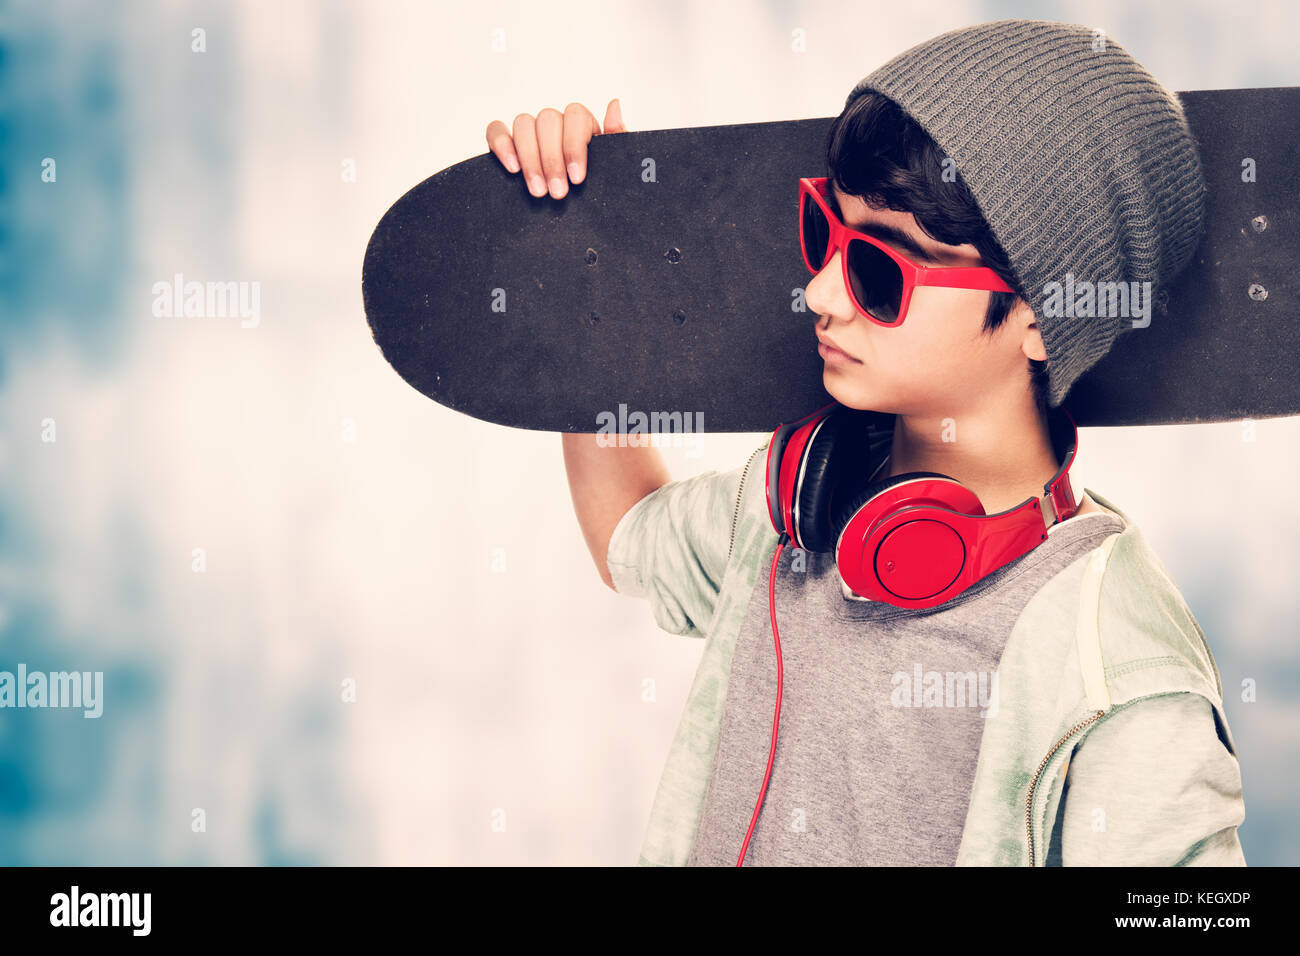 Portrait of a stylish teen boy wearing sunglasses and hat holding in hand skateboard over grunge background, modern Stock Photo